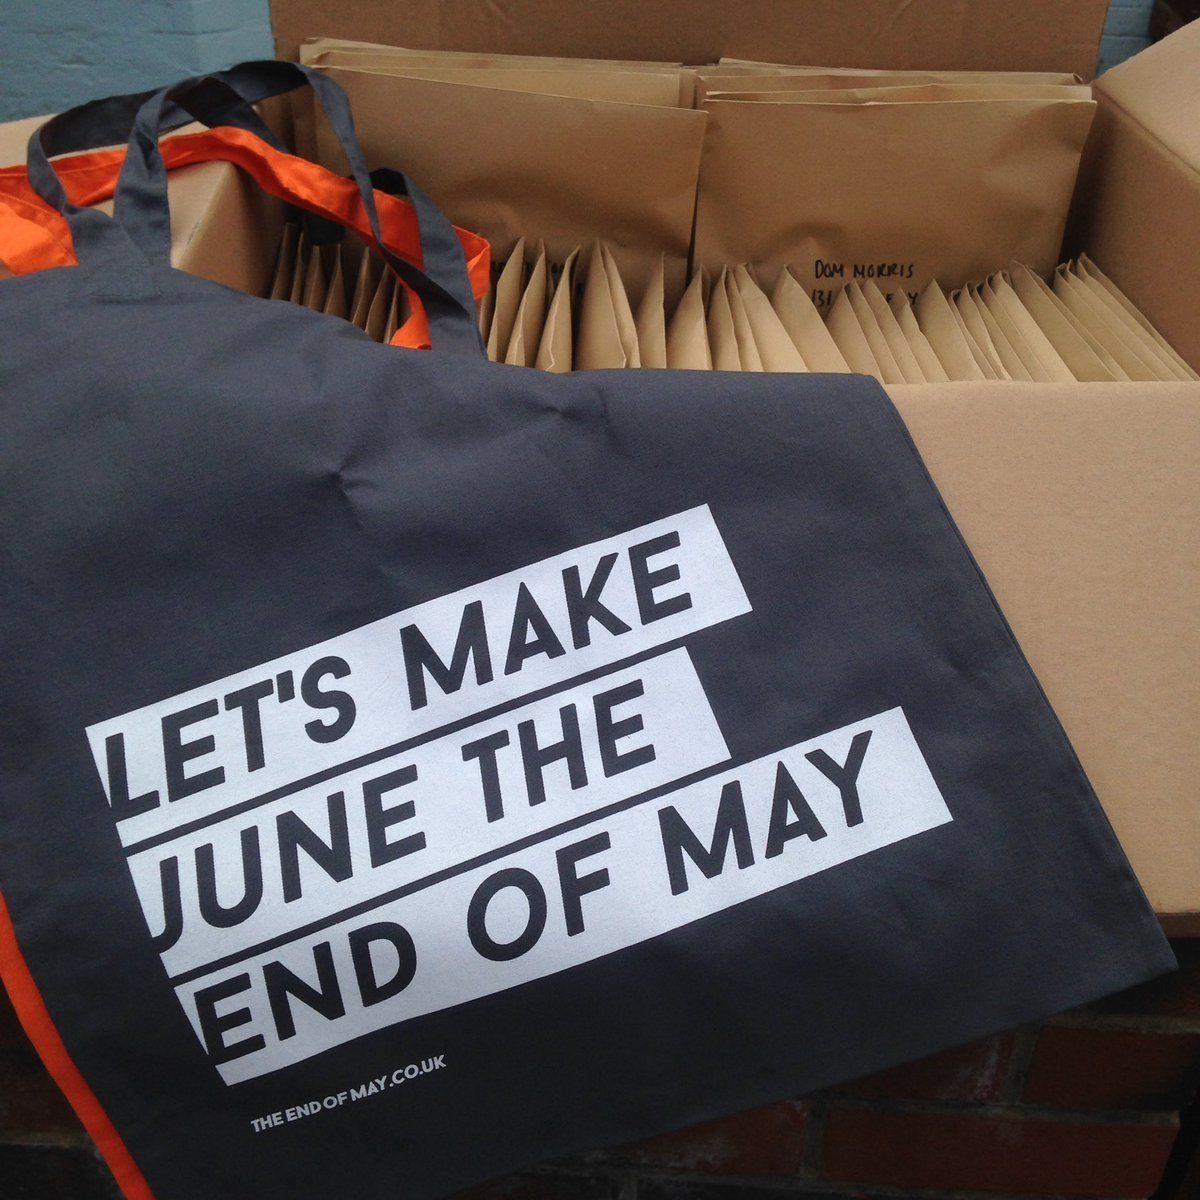 This 'Let's Make June The End Of May' Tote Lets You Make A Gender Neutral Political Style